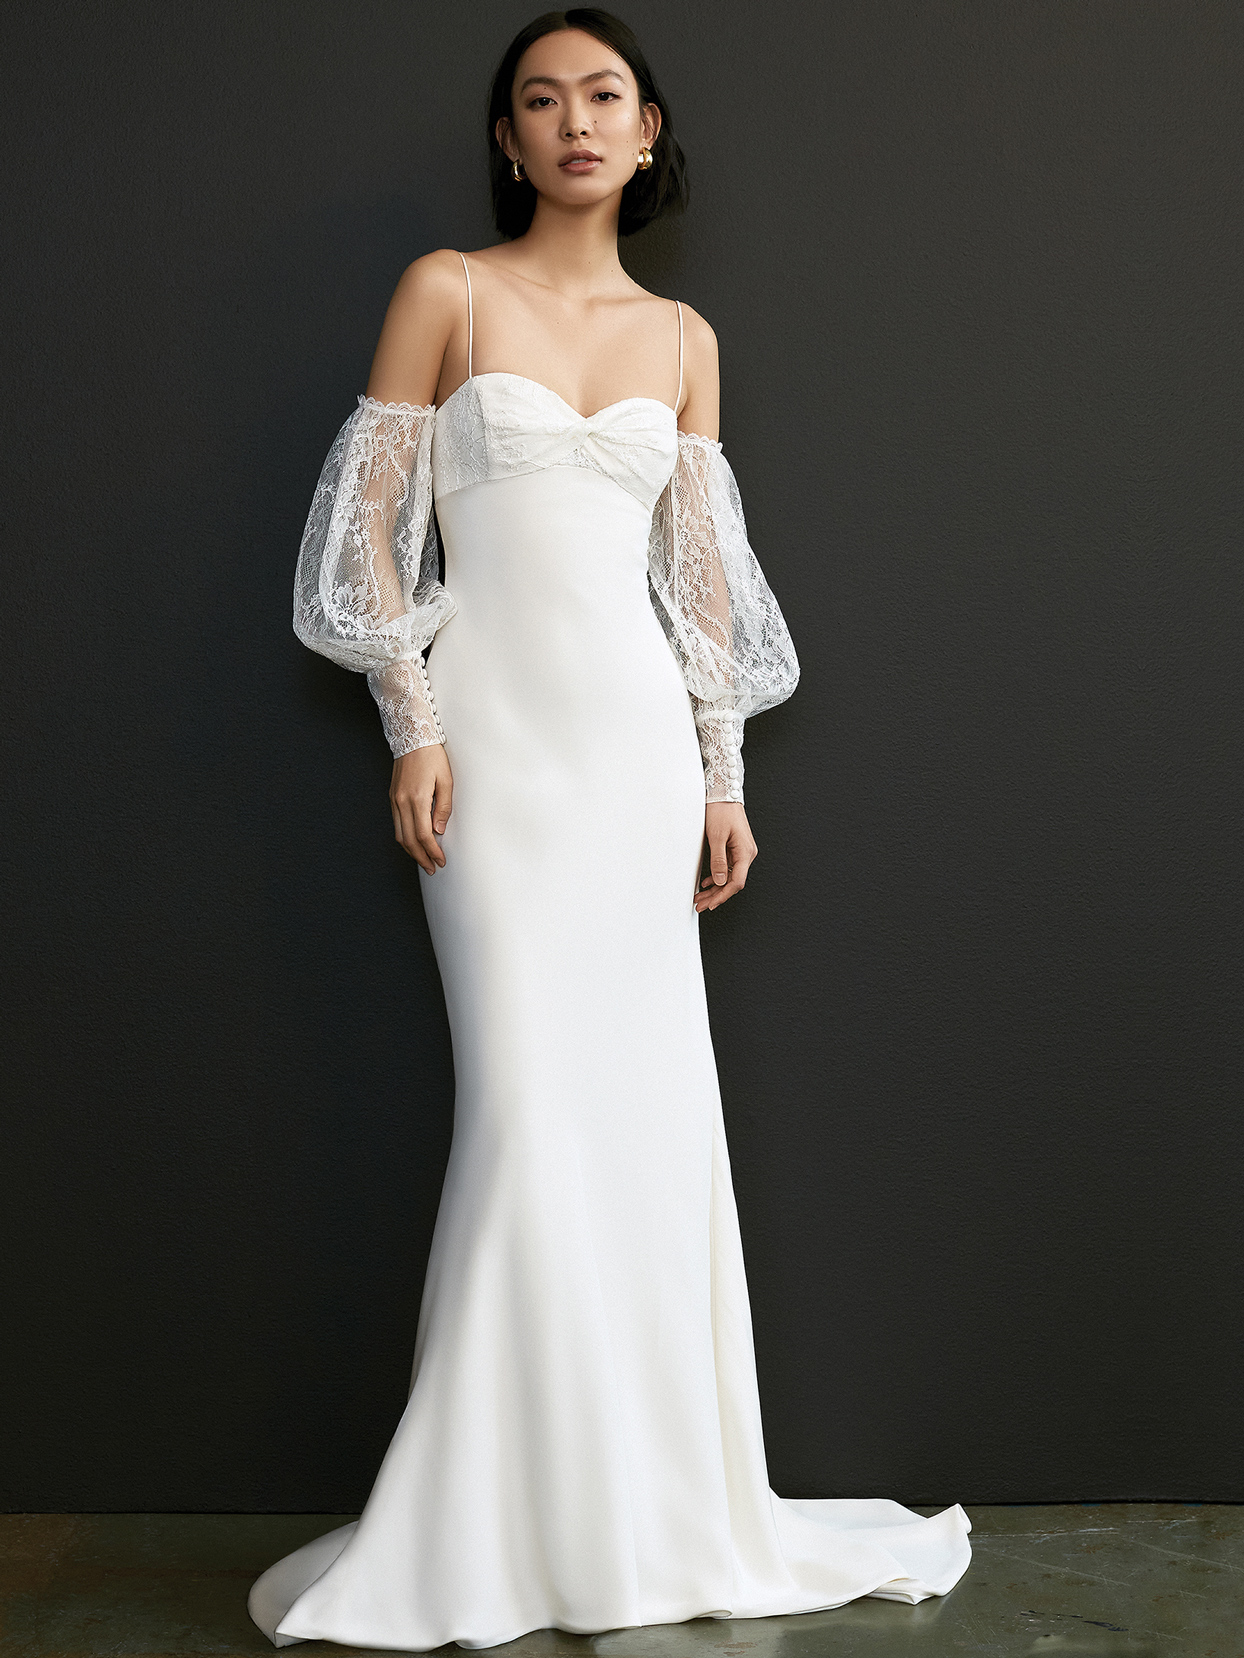 savannah miller lace off the shoulder long sleeve wedding dress spring 2021